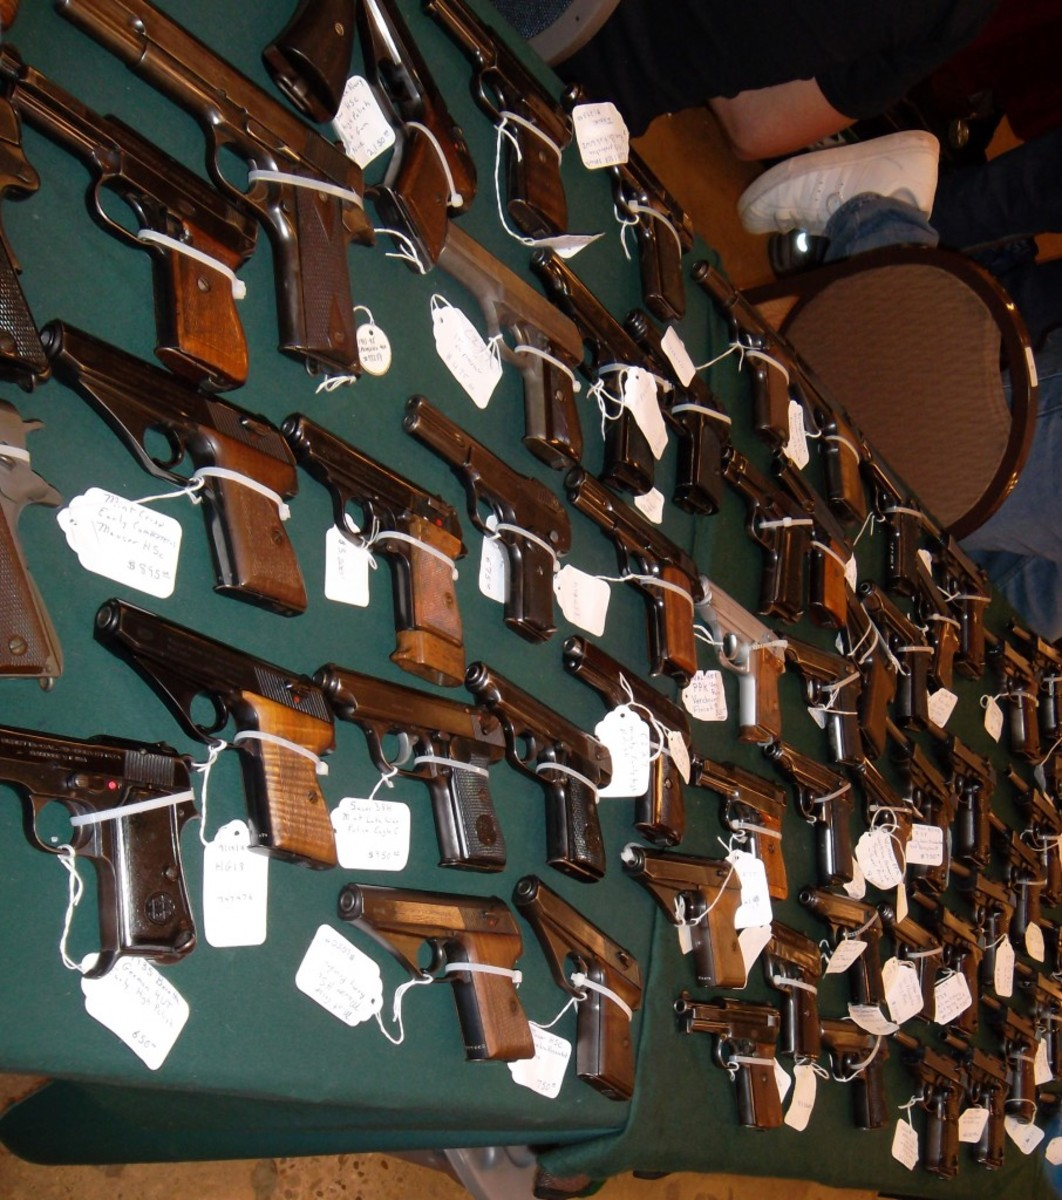 Scott Benedict of Pre98 Vintage Military & Collectible Firearms had a table full of military handguns